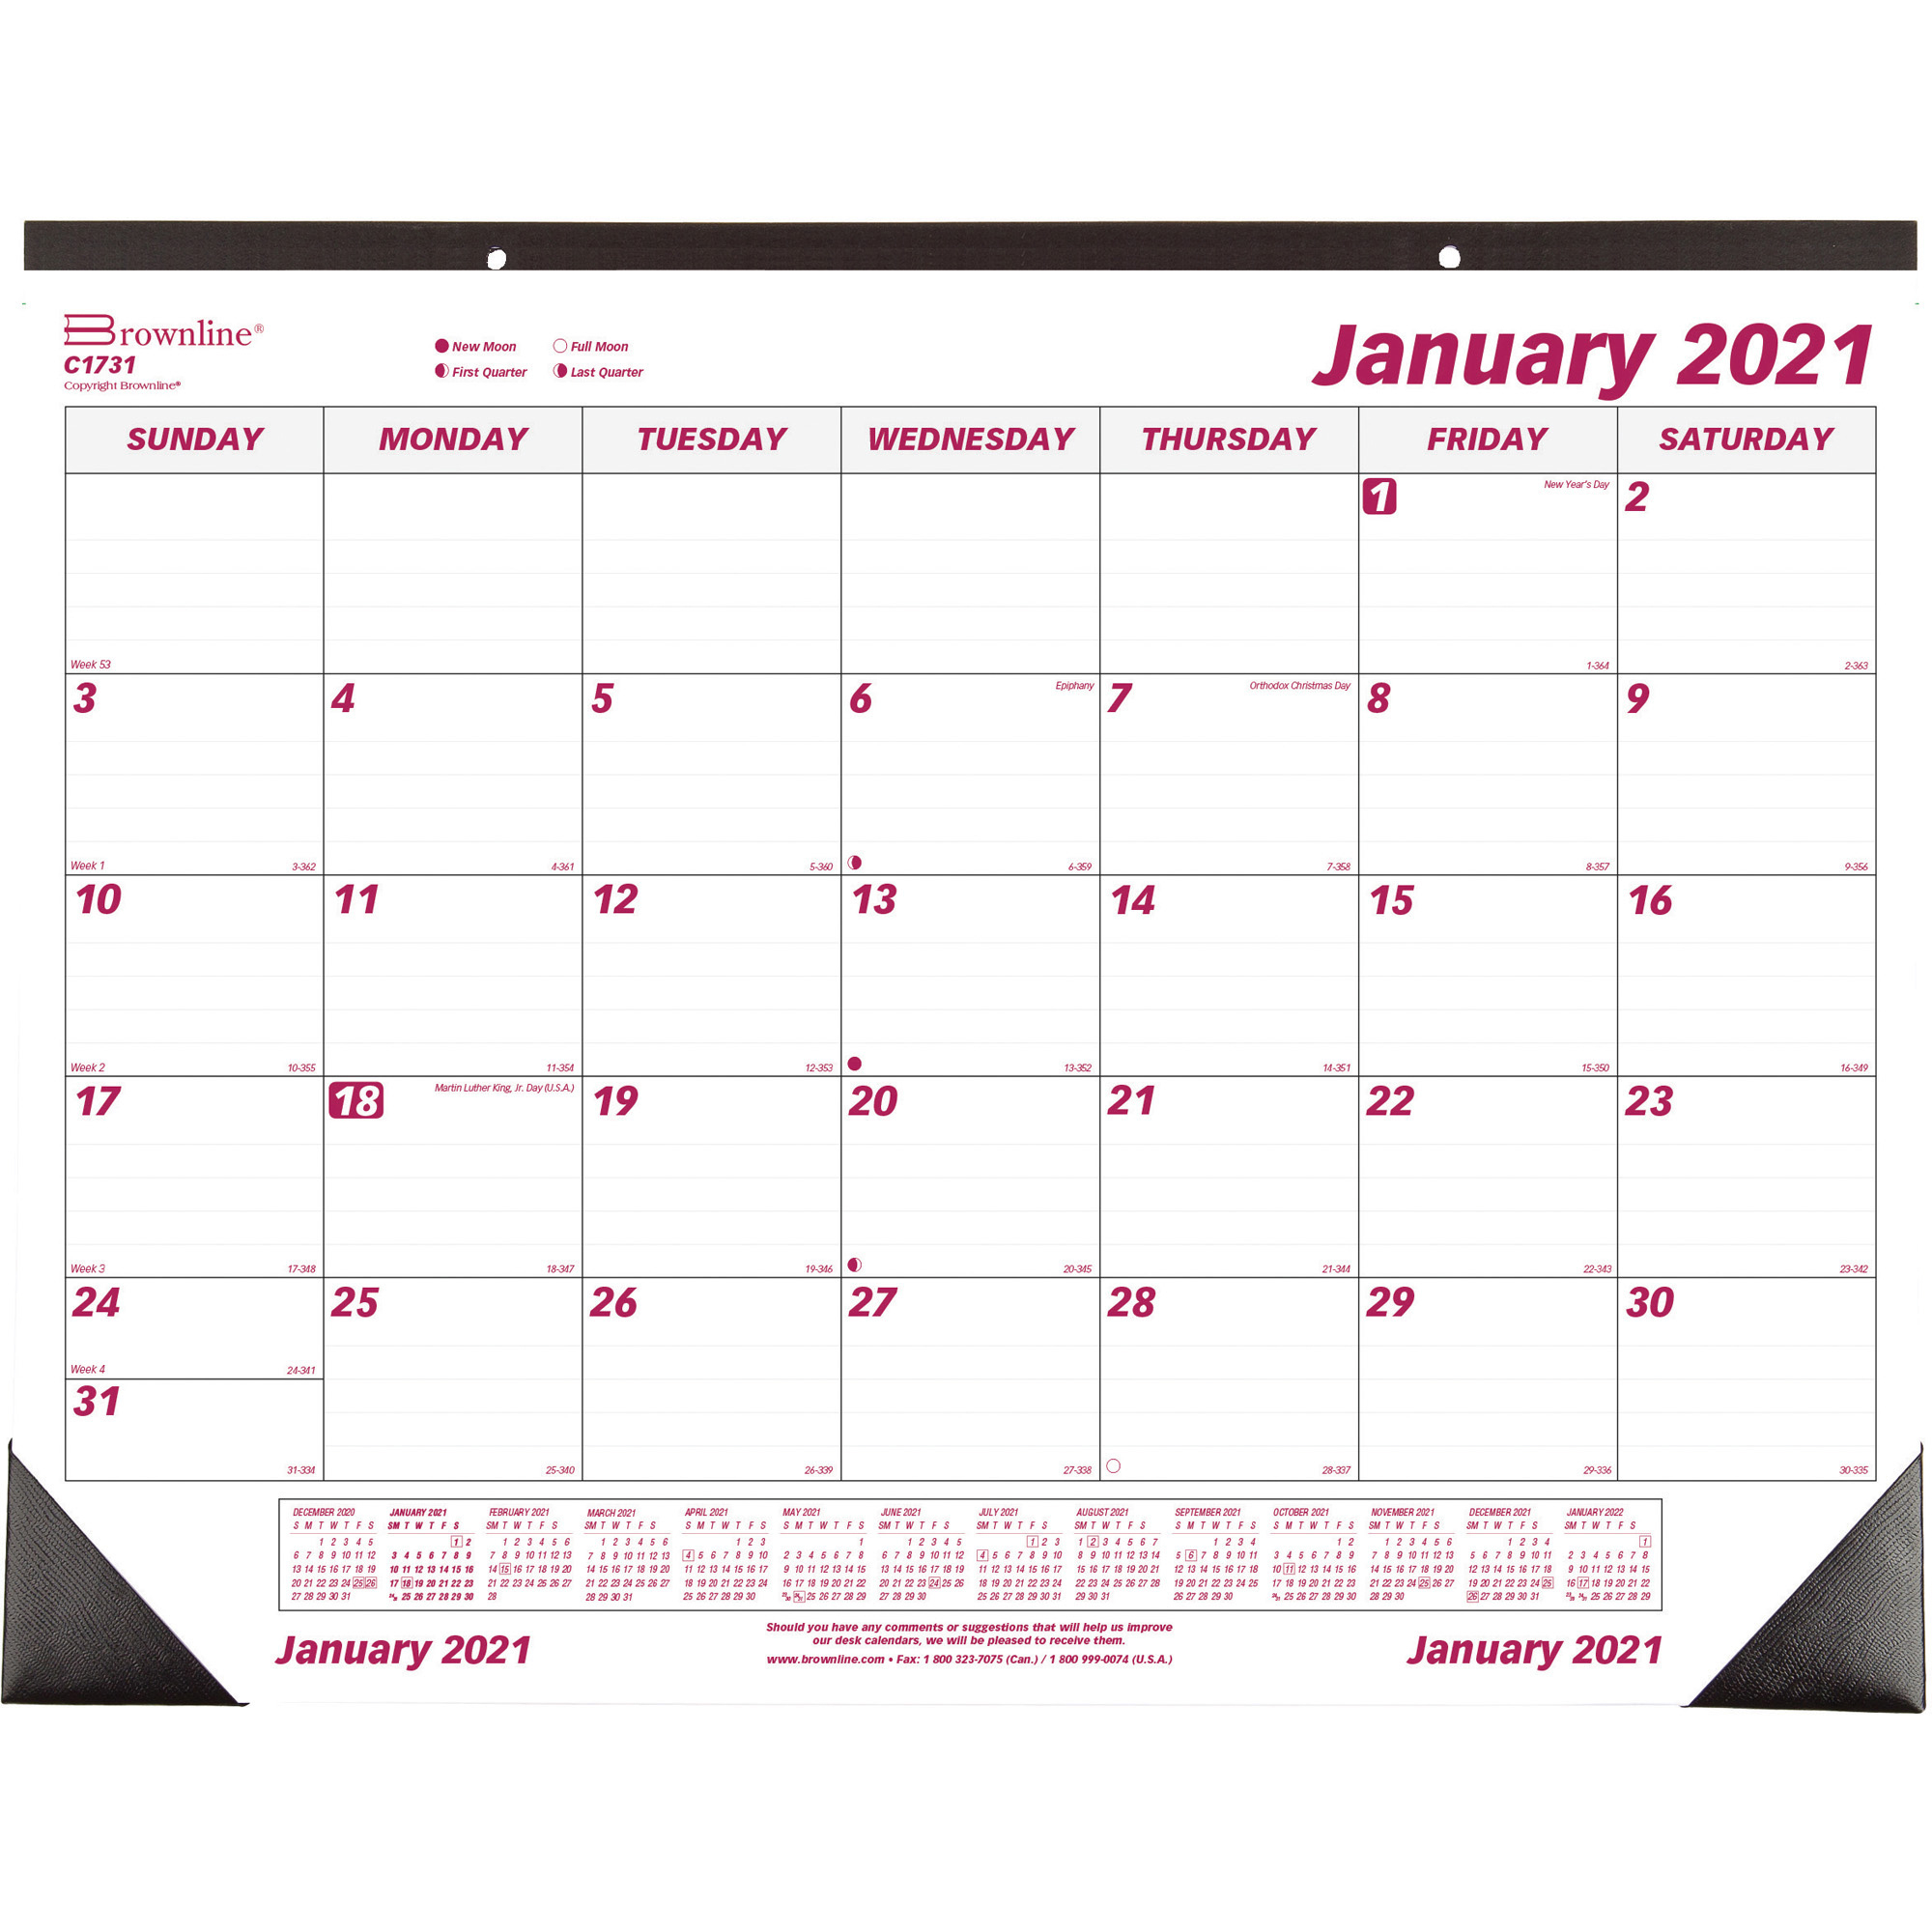 Brownline Professional Monthly DeskWall Calendar Julian Dates Monthly 1 Year January 2021 till December 2021 1 Month Single Page Layout REDC1731x